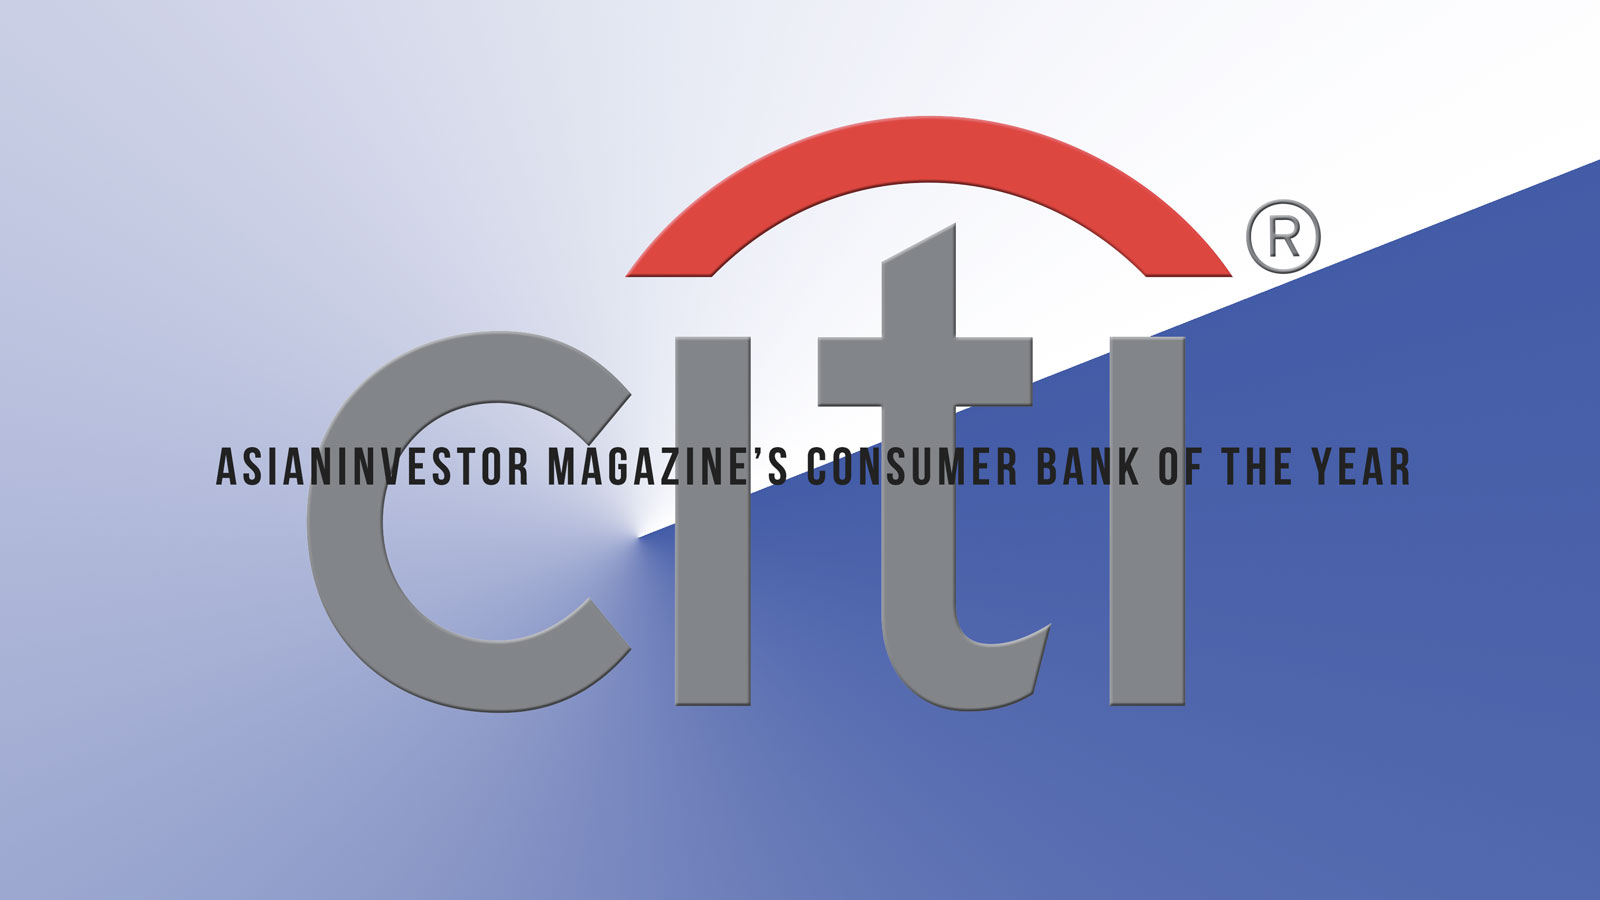 Citi is AsianInvestor Magazine's Consumer Bank of the Year